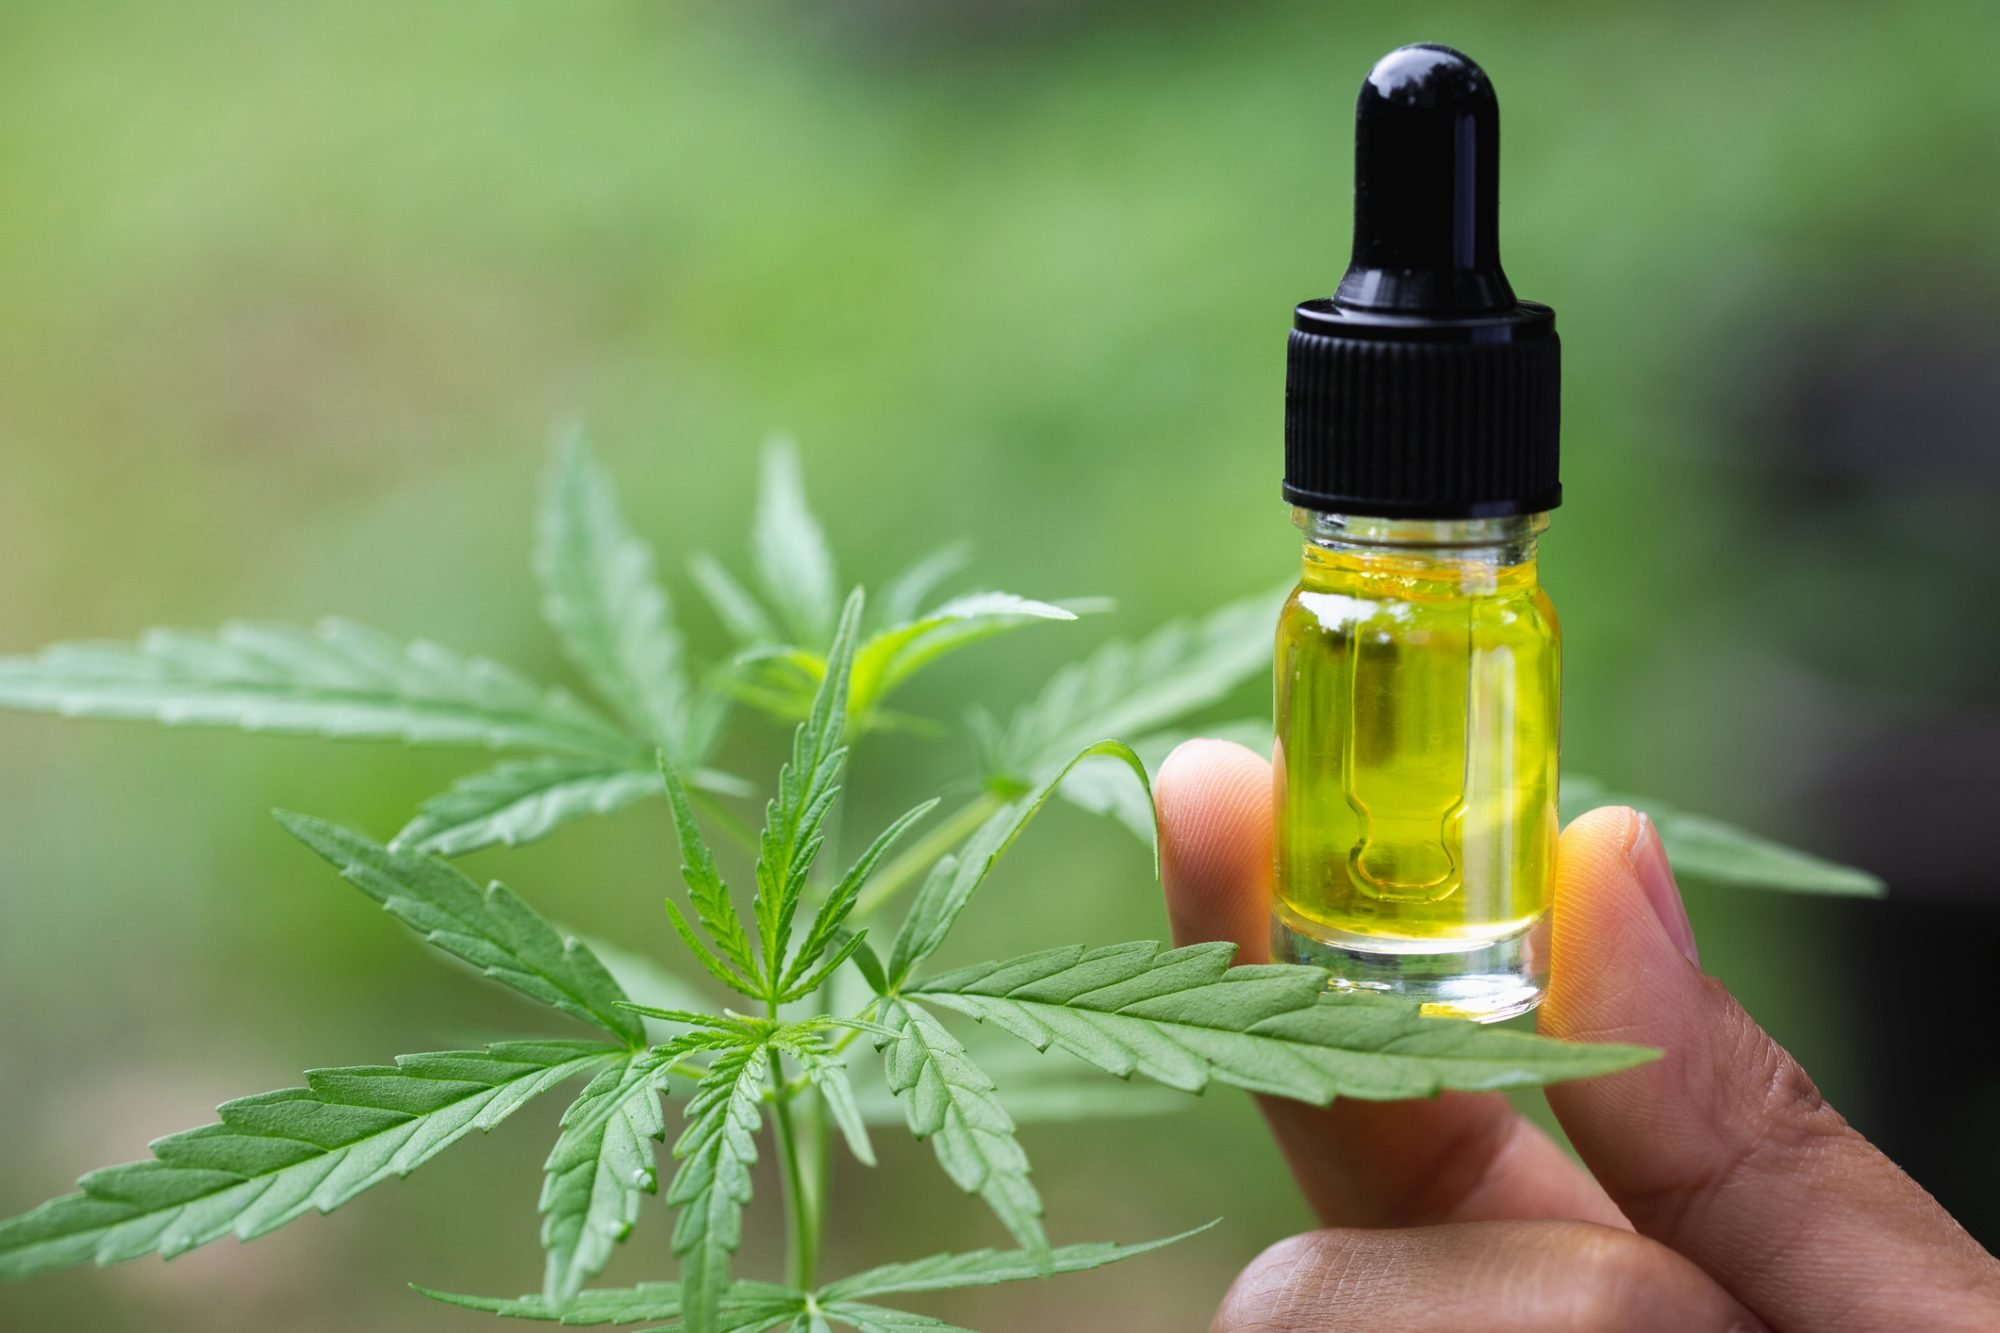 Olio di CBD e Olio di Cannabis: le differenze